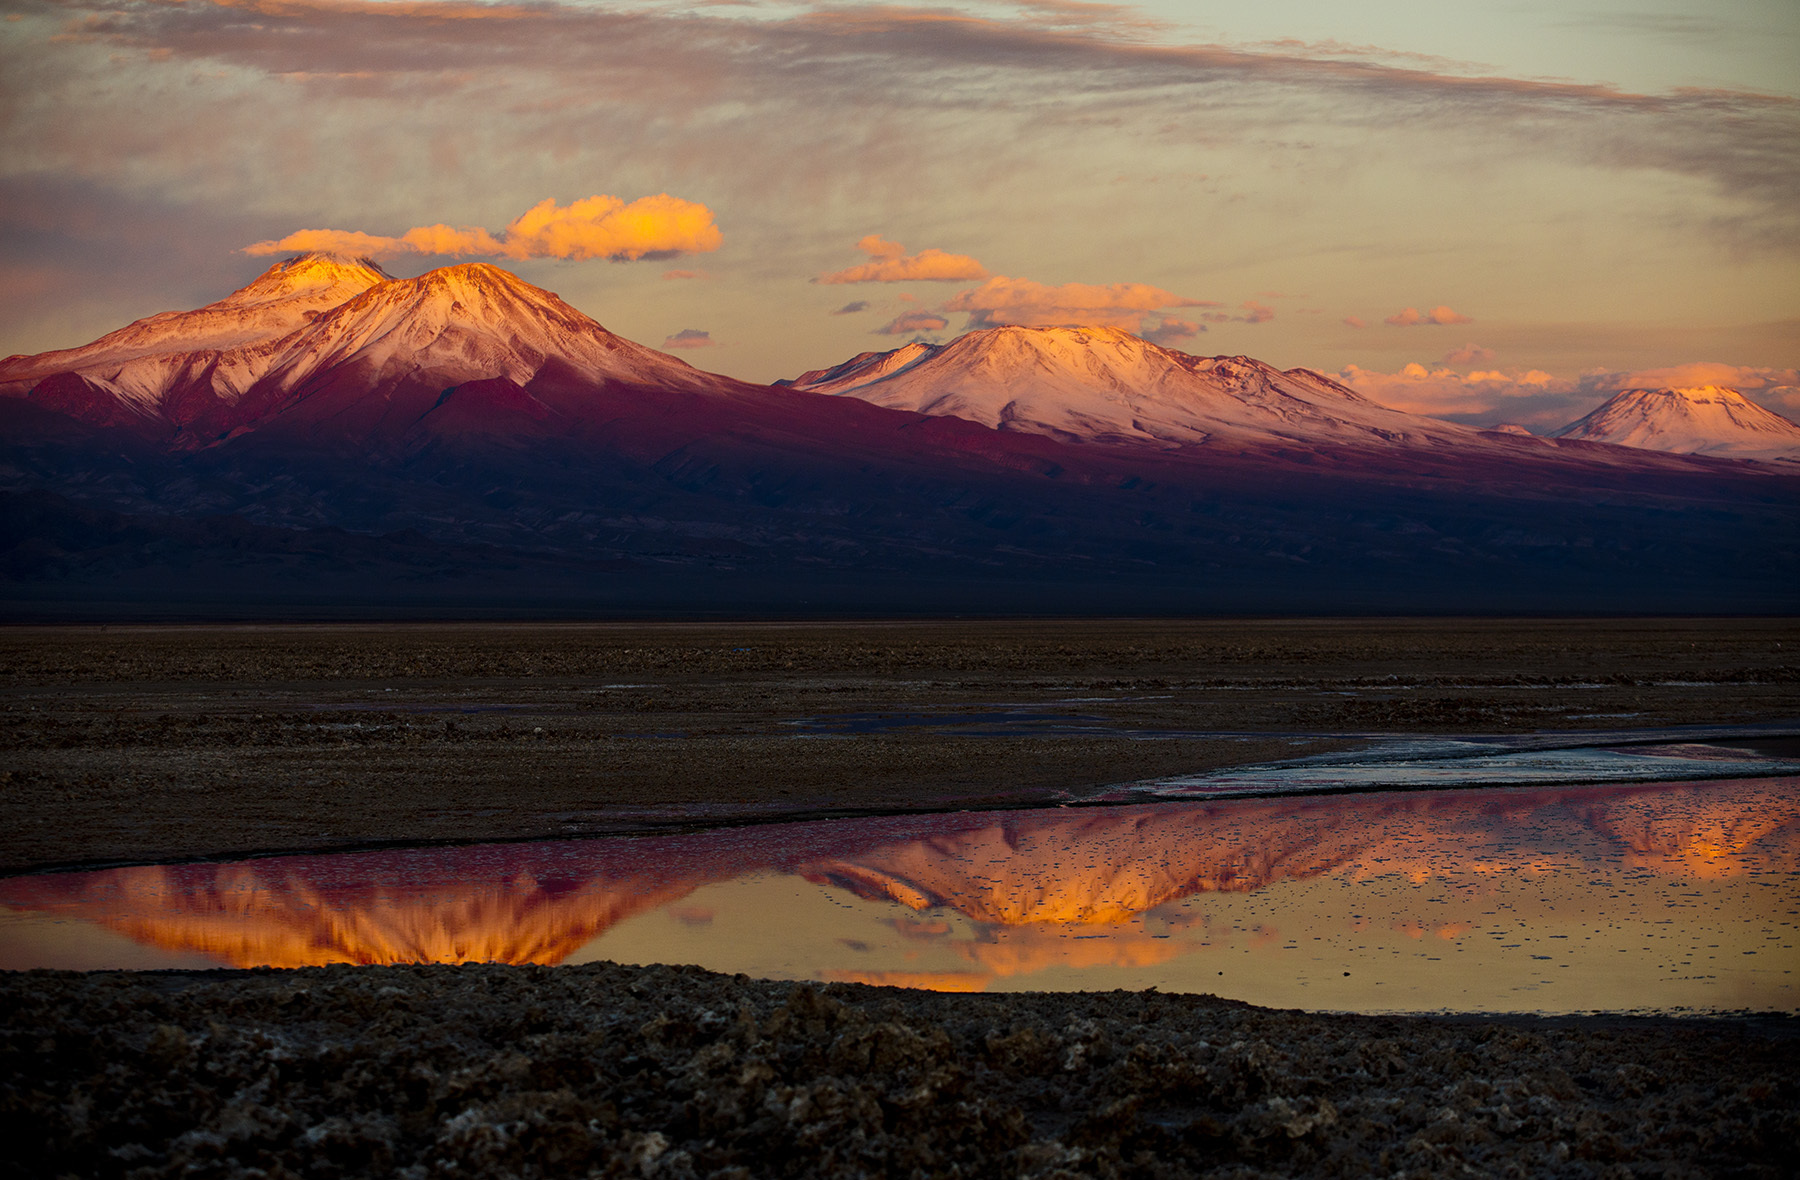 Atacama Desert, Chile